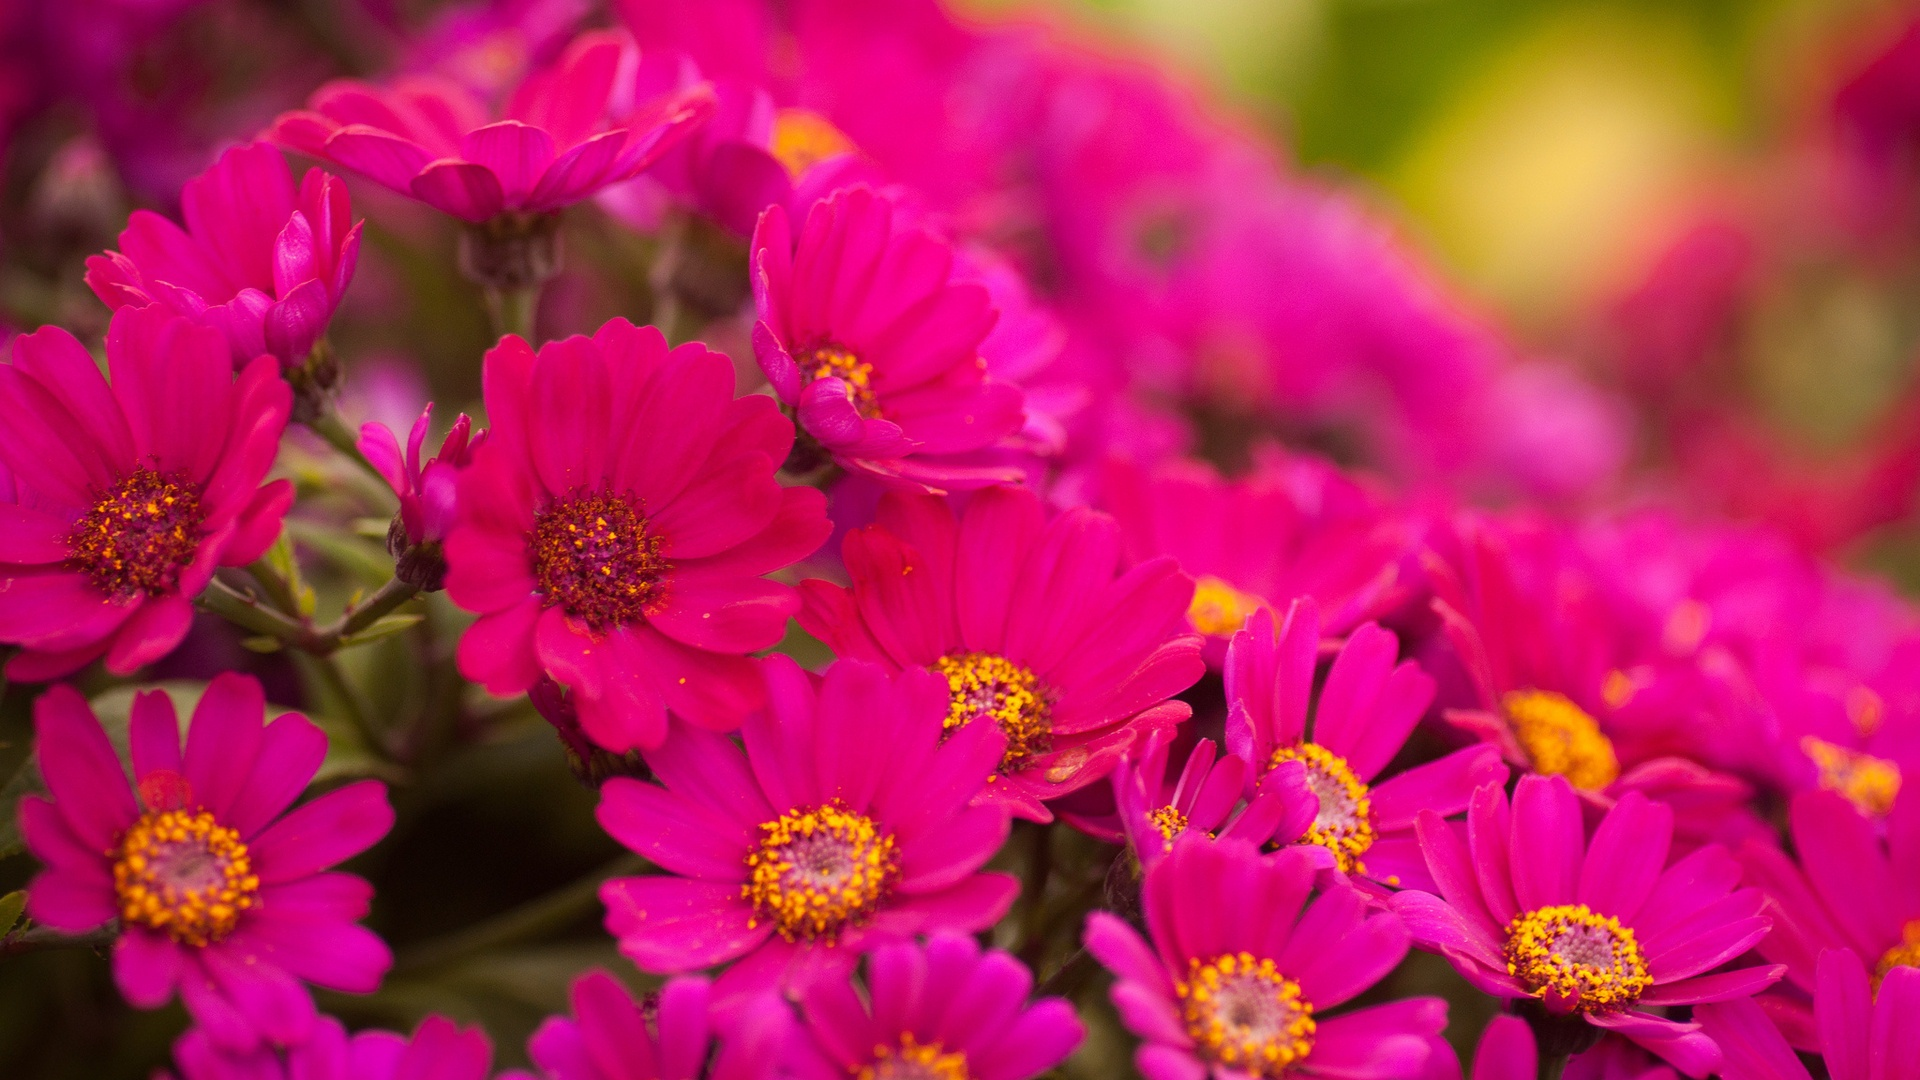 Amazing Pink Flowers